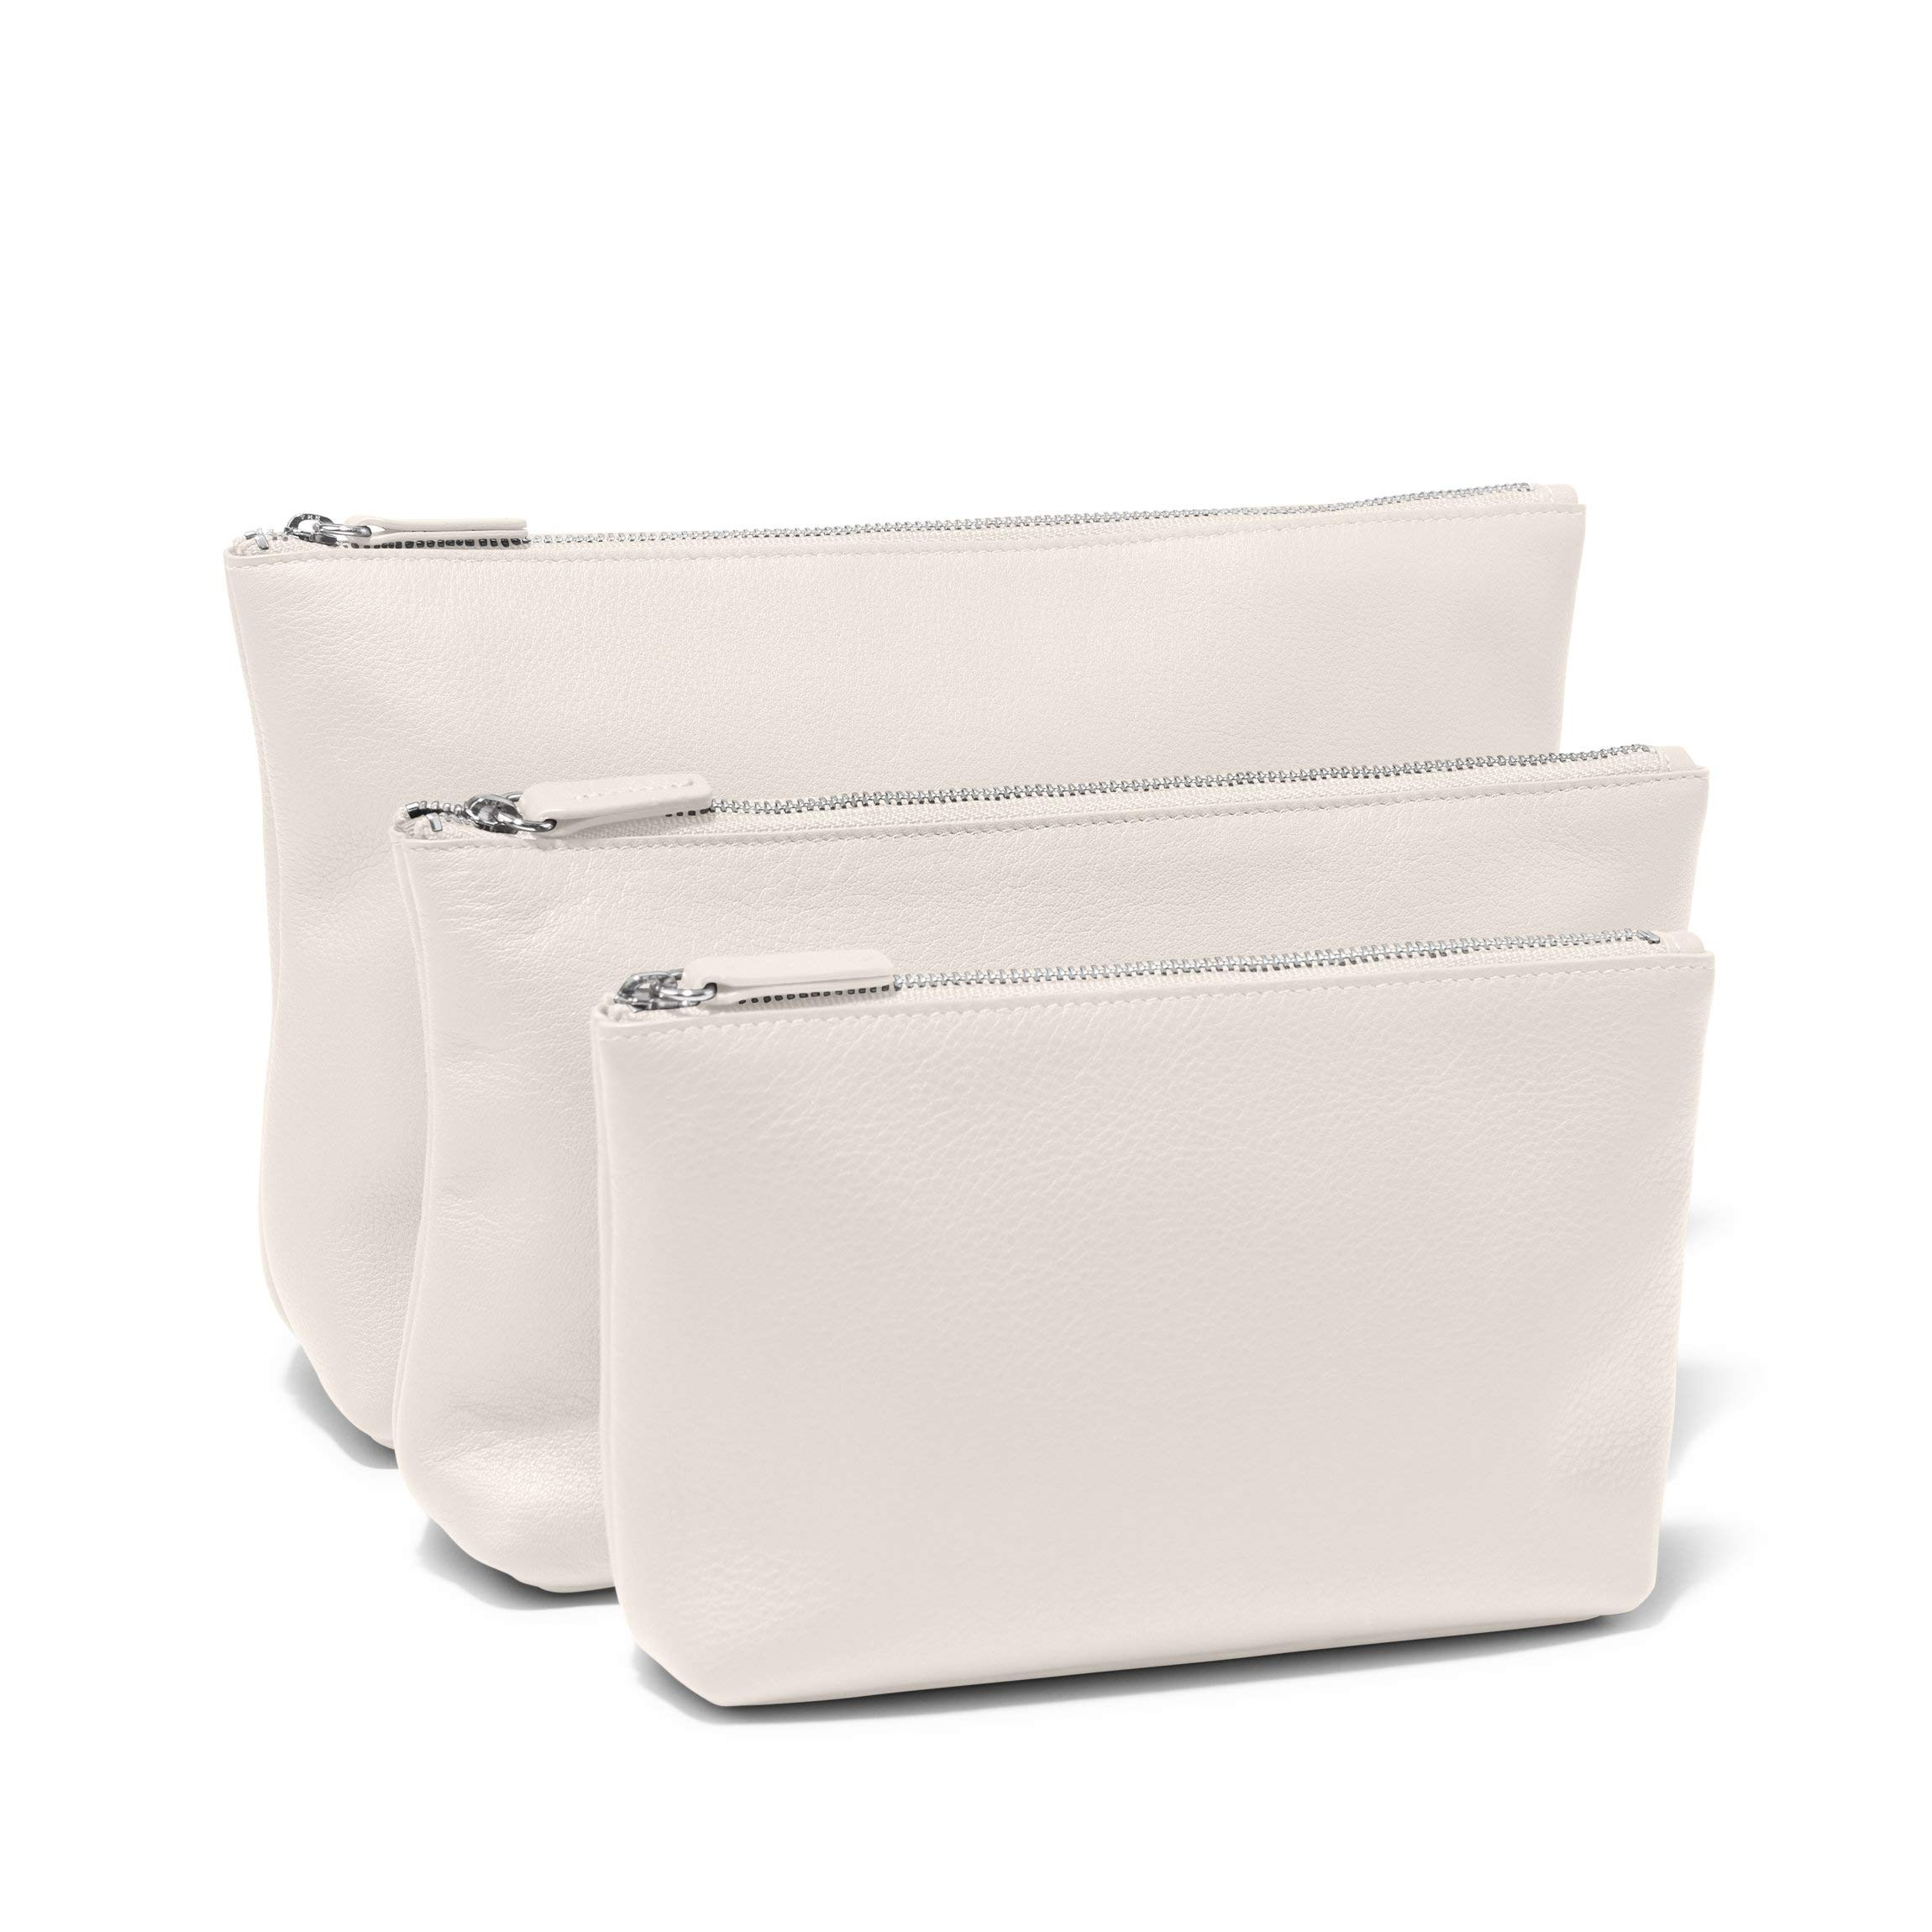 Standing Pouch Trio - Italian Leather Leather - Ivory (White)